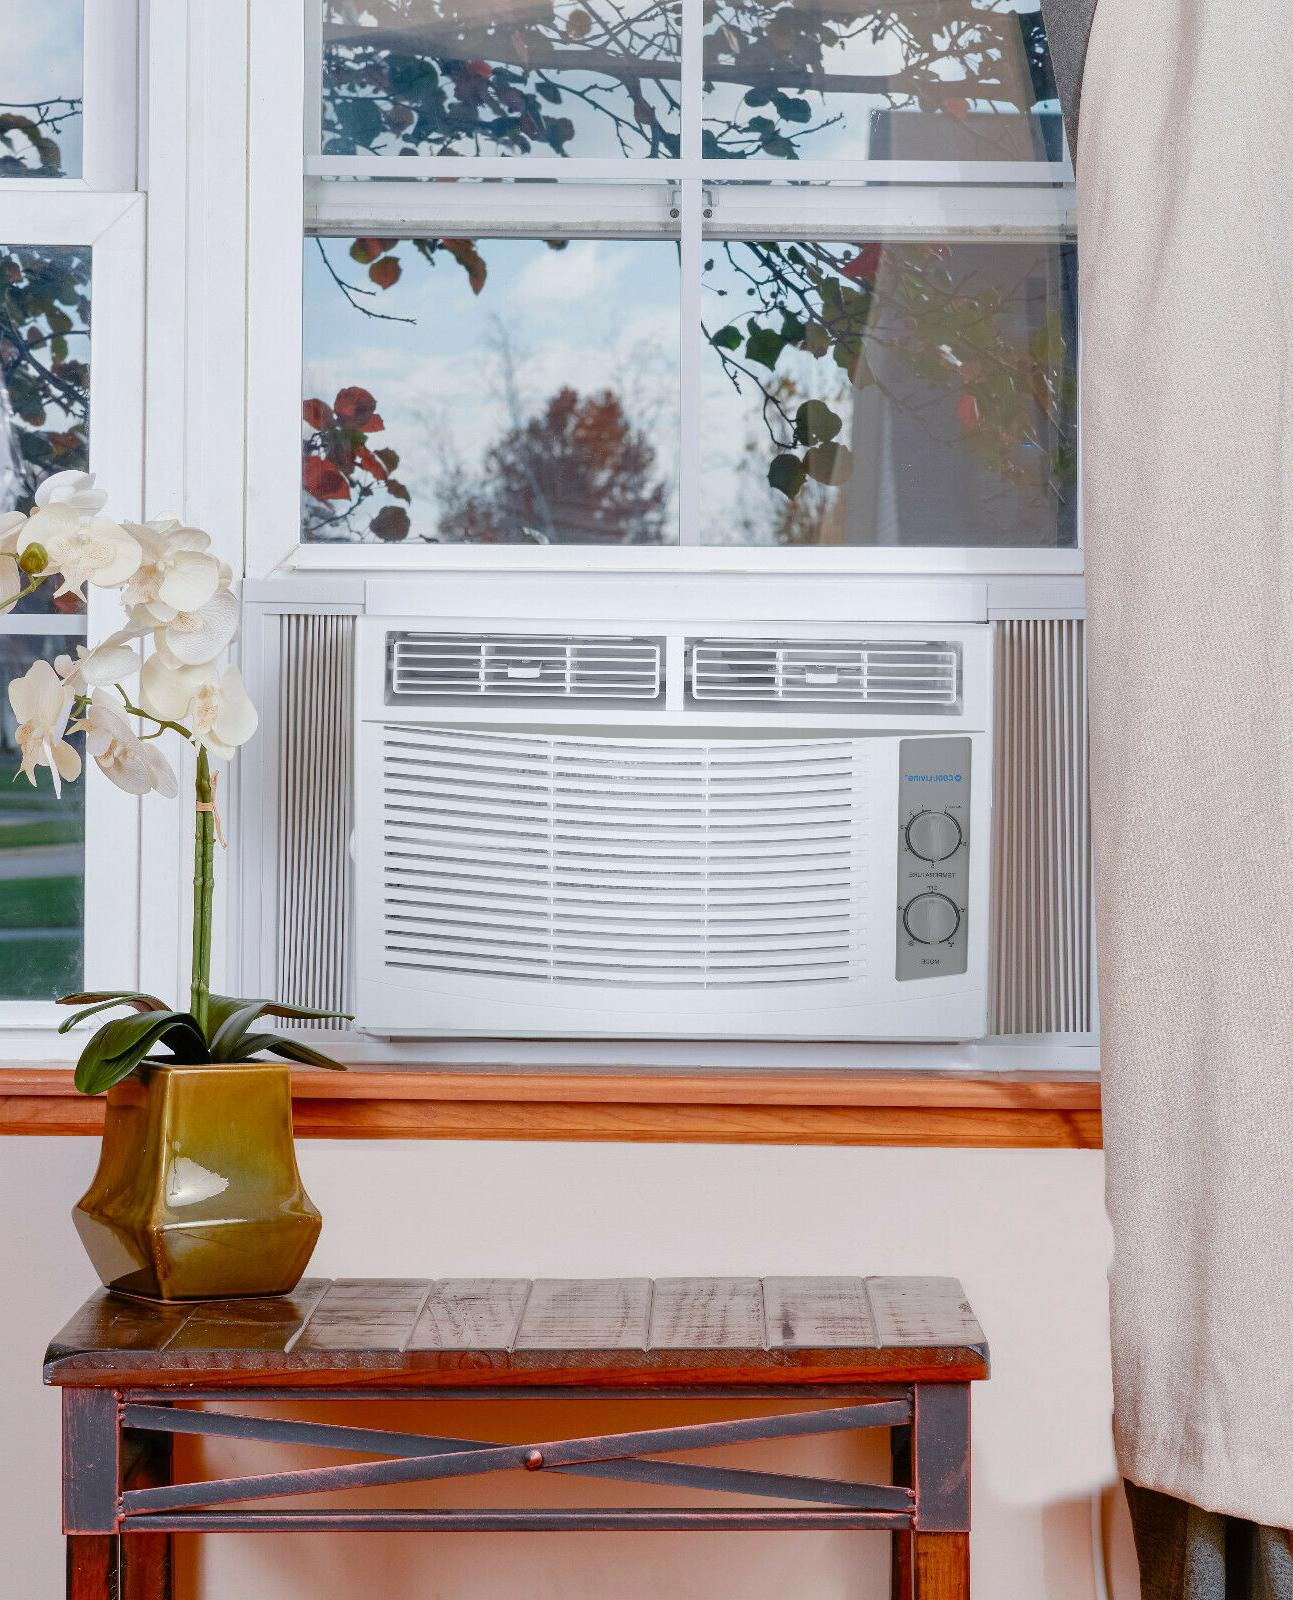 Bedroom Air Conditioner 5000 Compact Kit